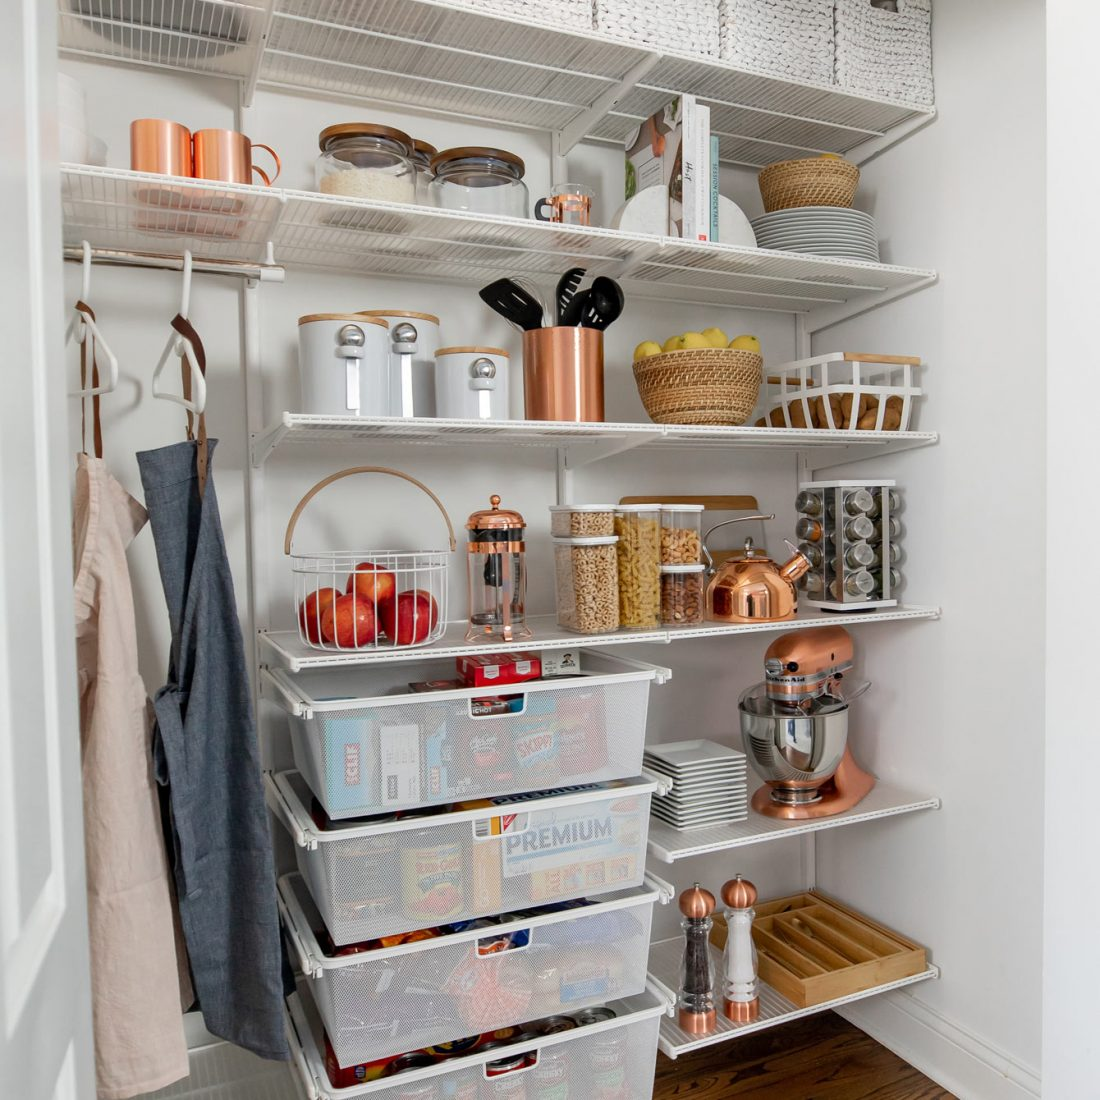 Jennifer Lake Crate Barrel Pantry Organization